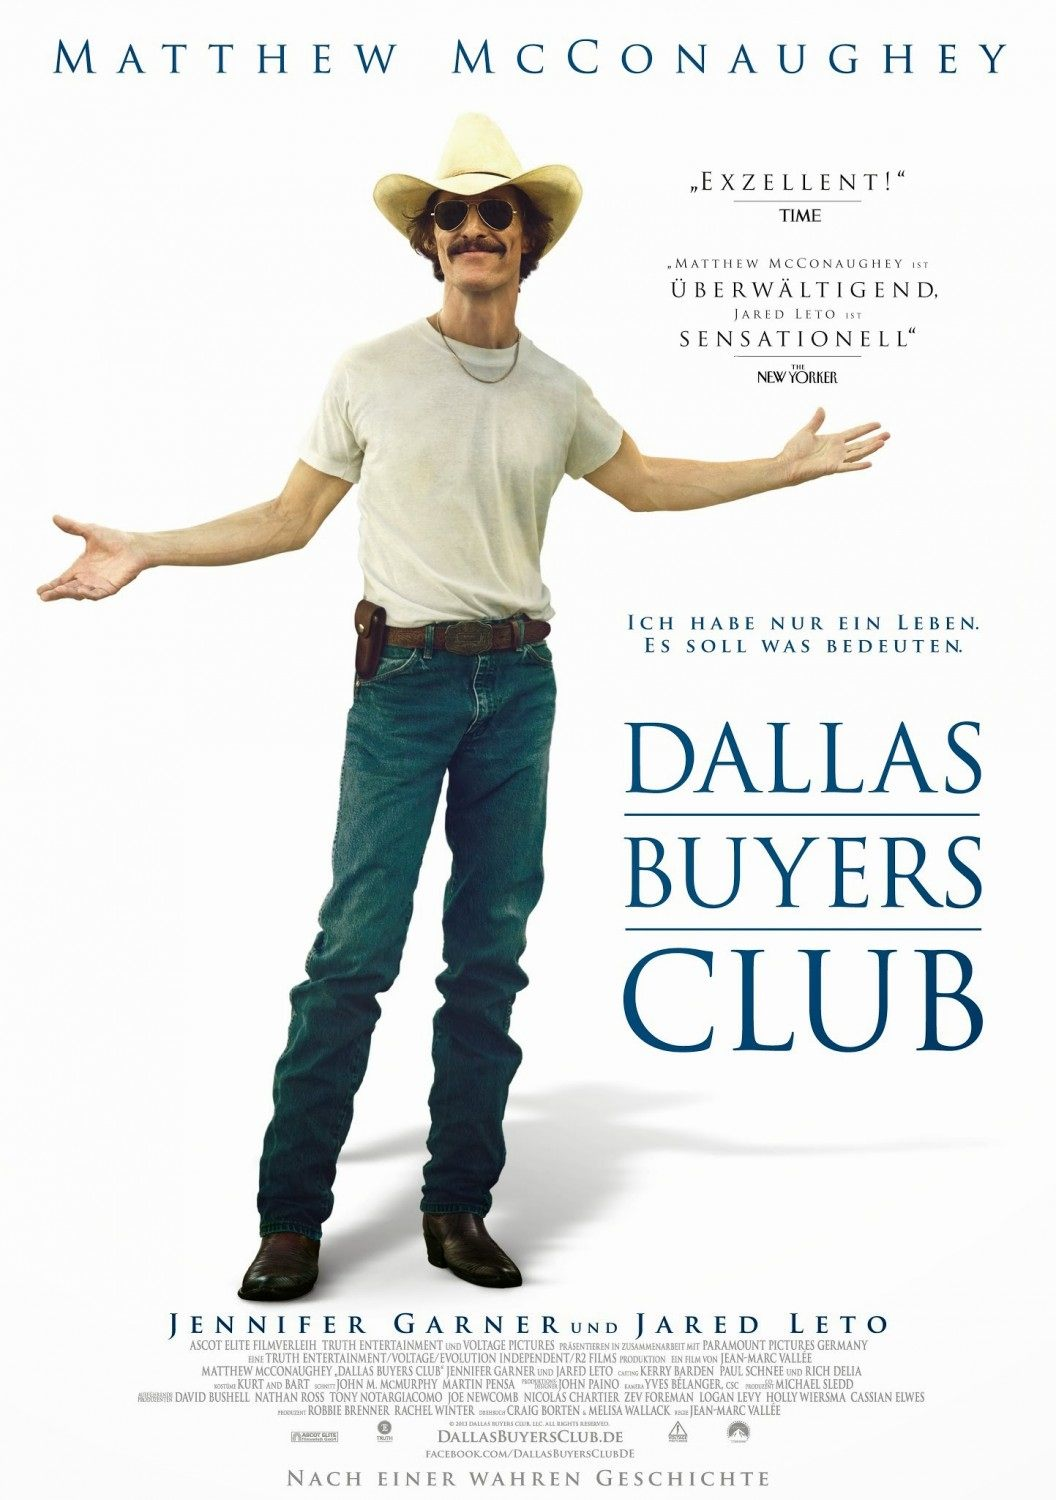 mother day photo gift ideas - Dallas Buyers Club Local News Magazine